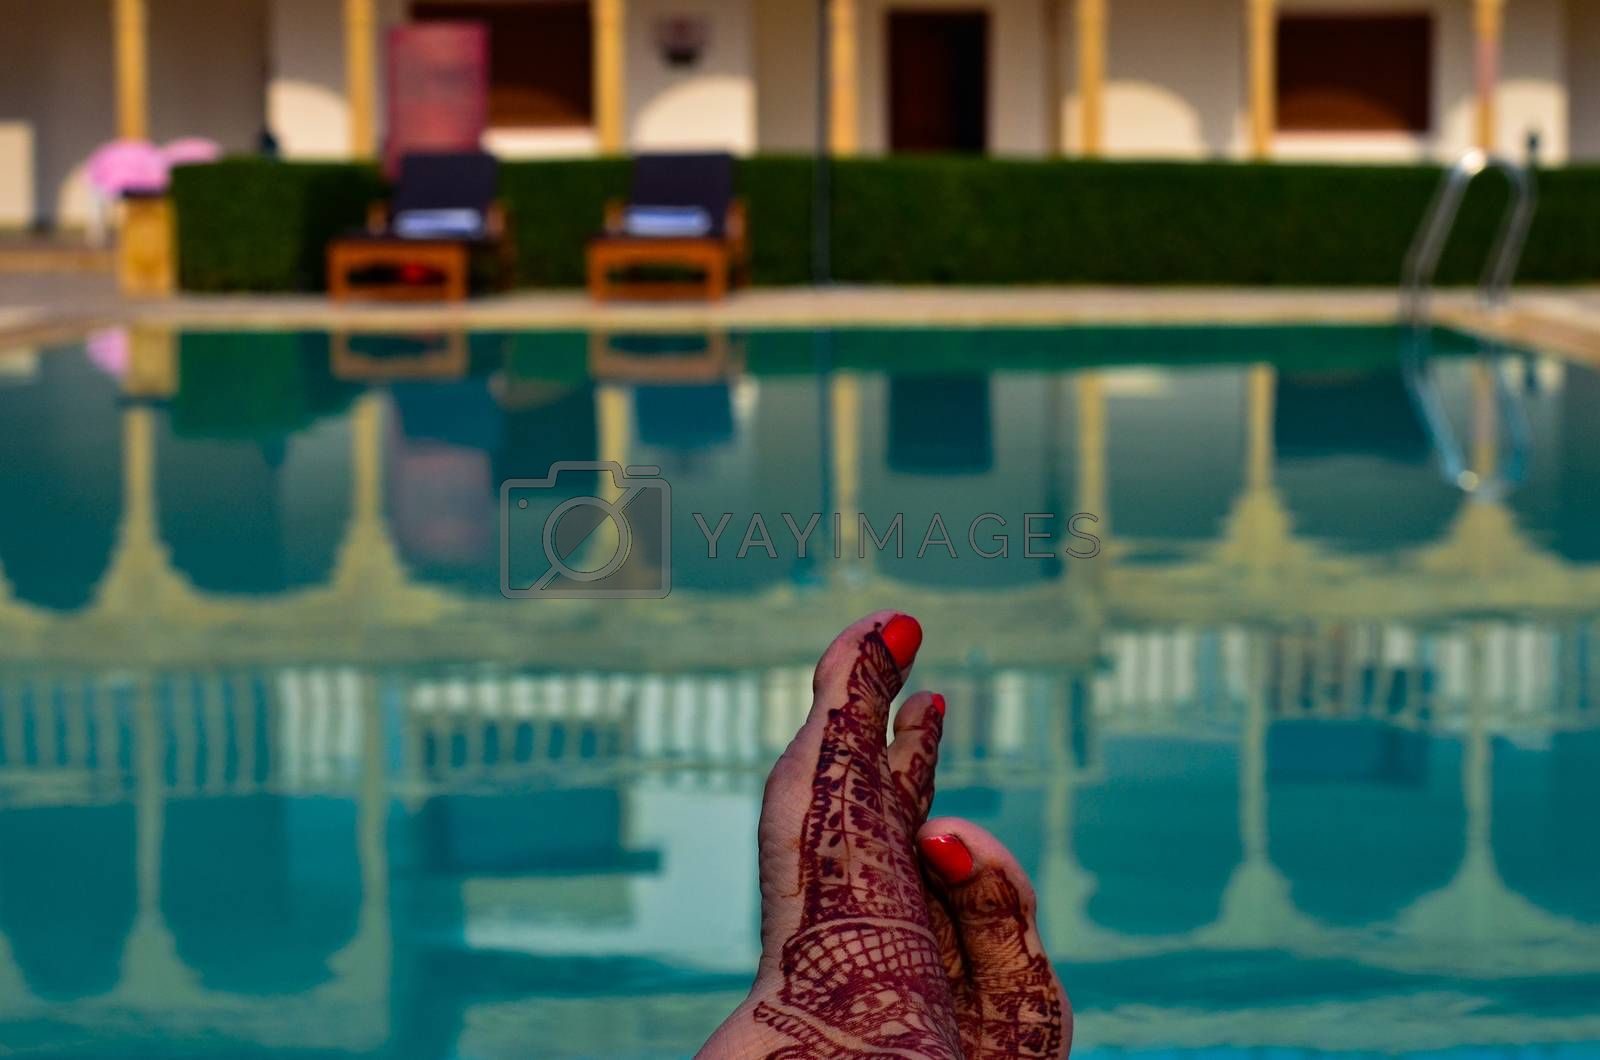 Newly married woman with henna feet in front of a swimming pool on her honeymoon in a resort in Jaisalmer, India